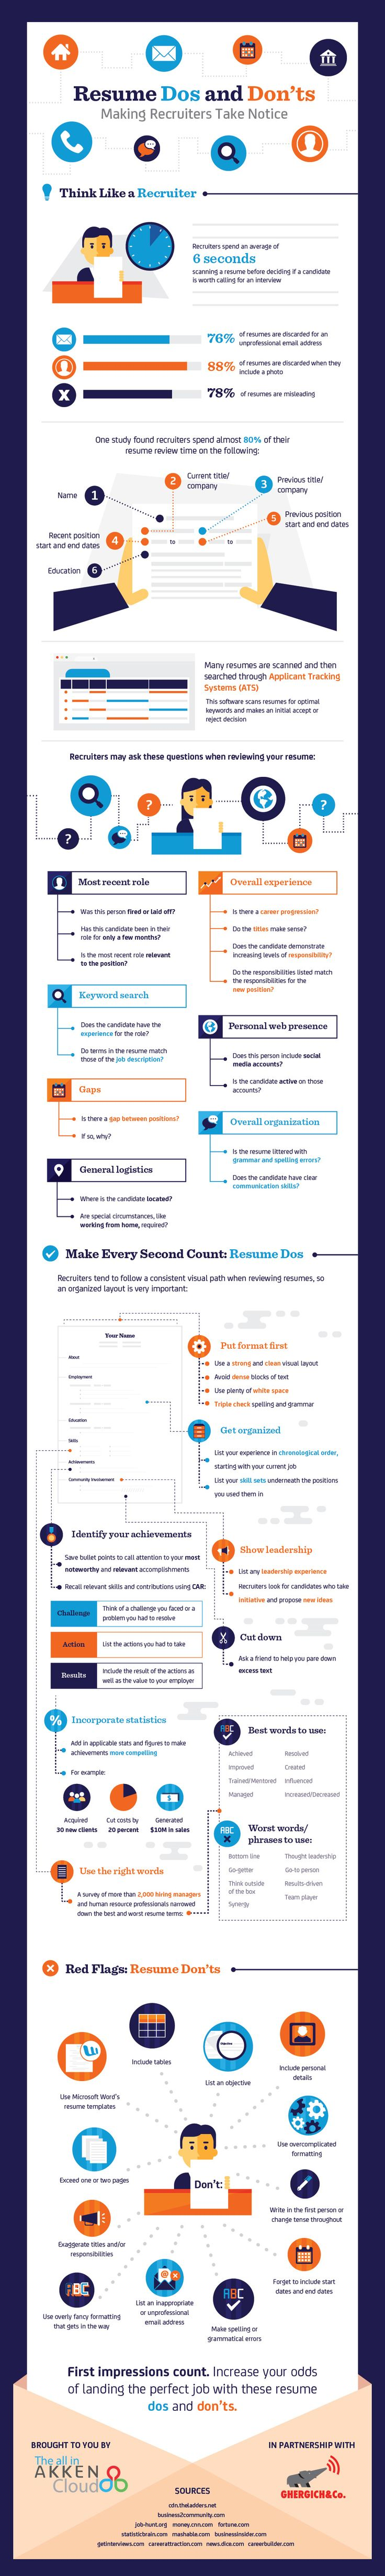 How to impress employers with your resumé - and what not to do. Pinned by #Europass